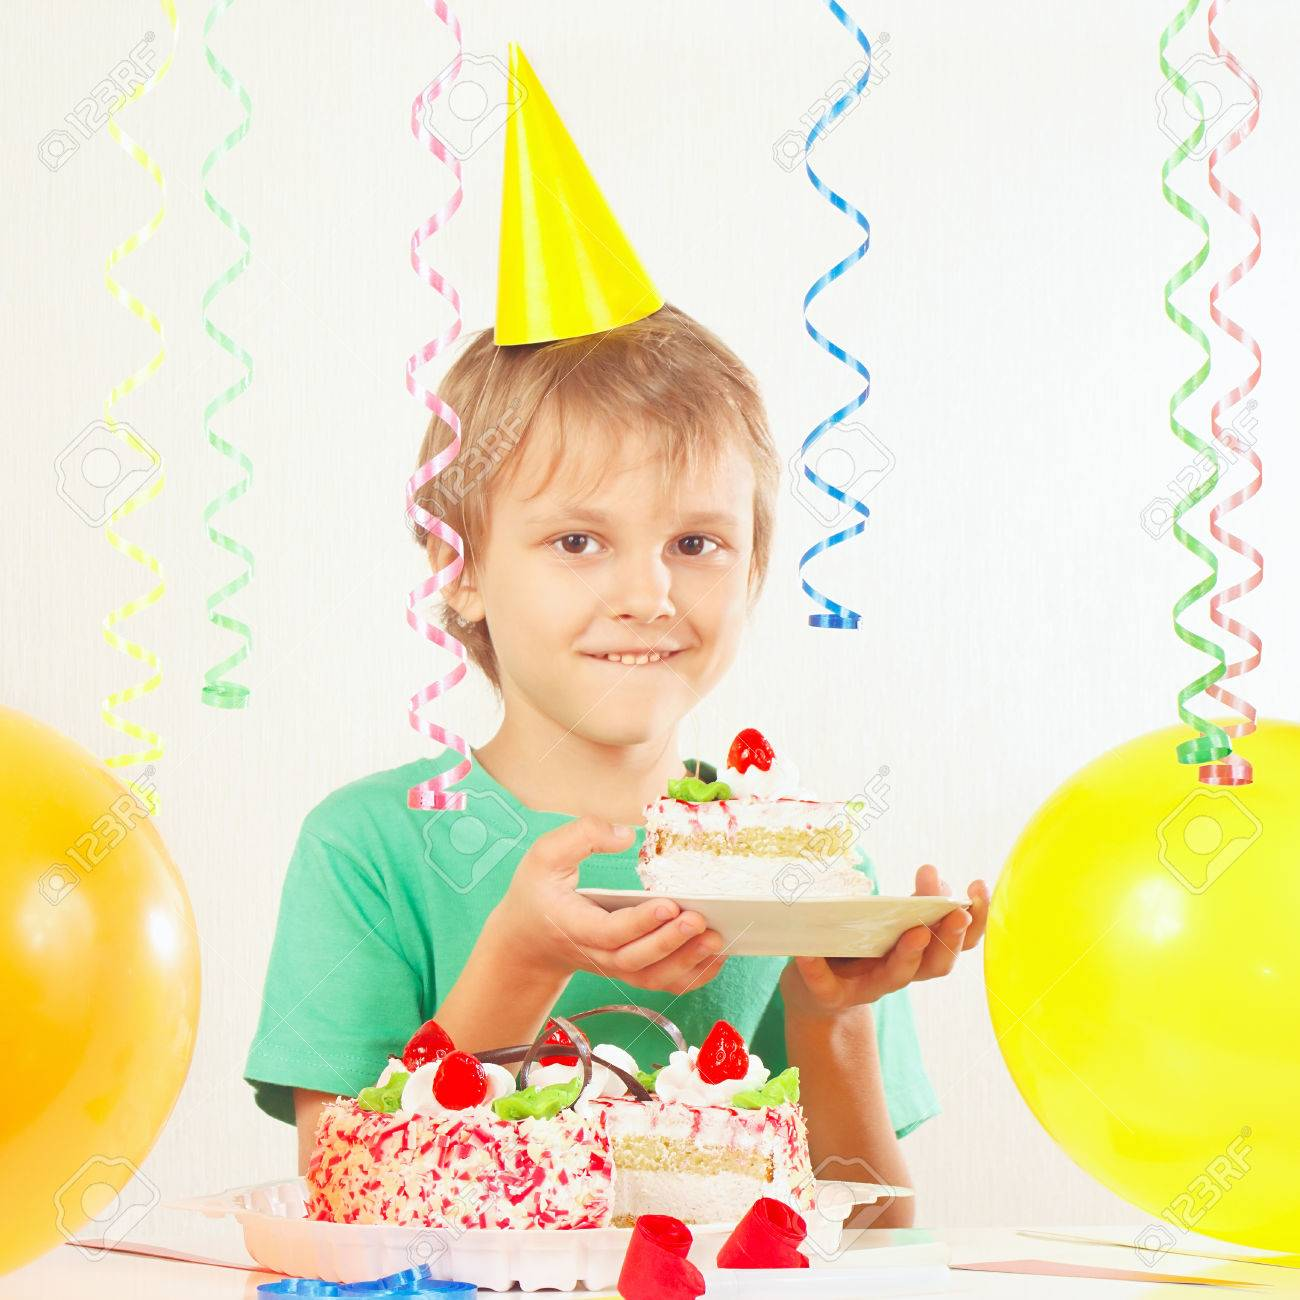 Little Kid In Holiday Hat With A Piece Of Birthday Cake And Balloons Stock Photo